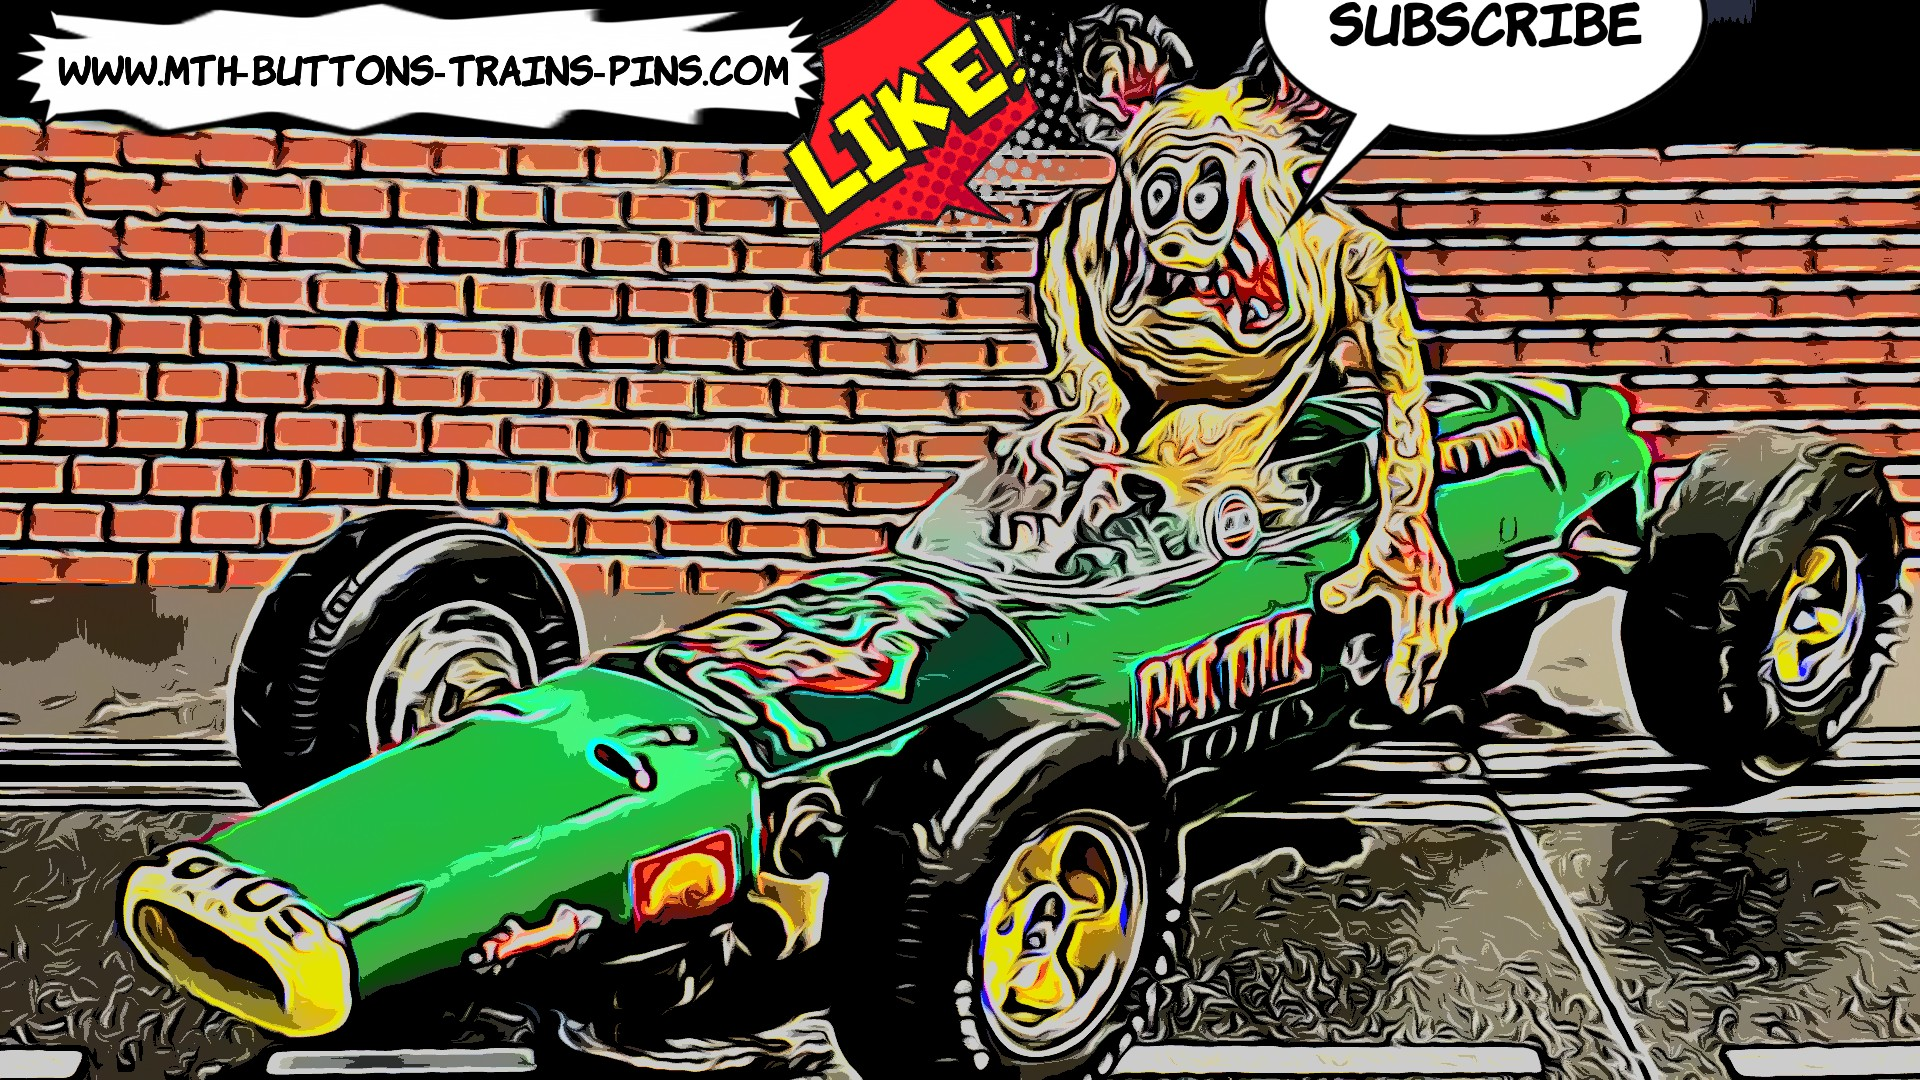 * SOLD * 1960s Lotus Rat Fink F1Racing Special Slot Car 1/24 Scale